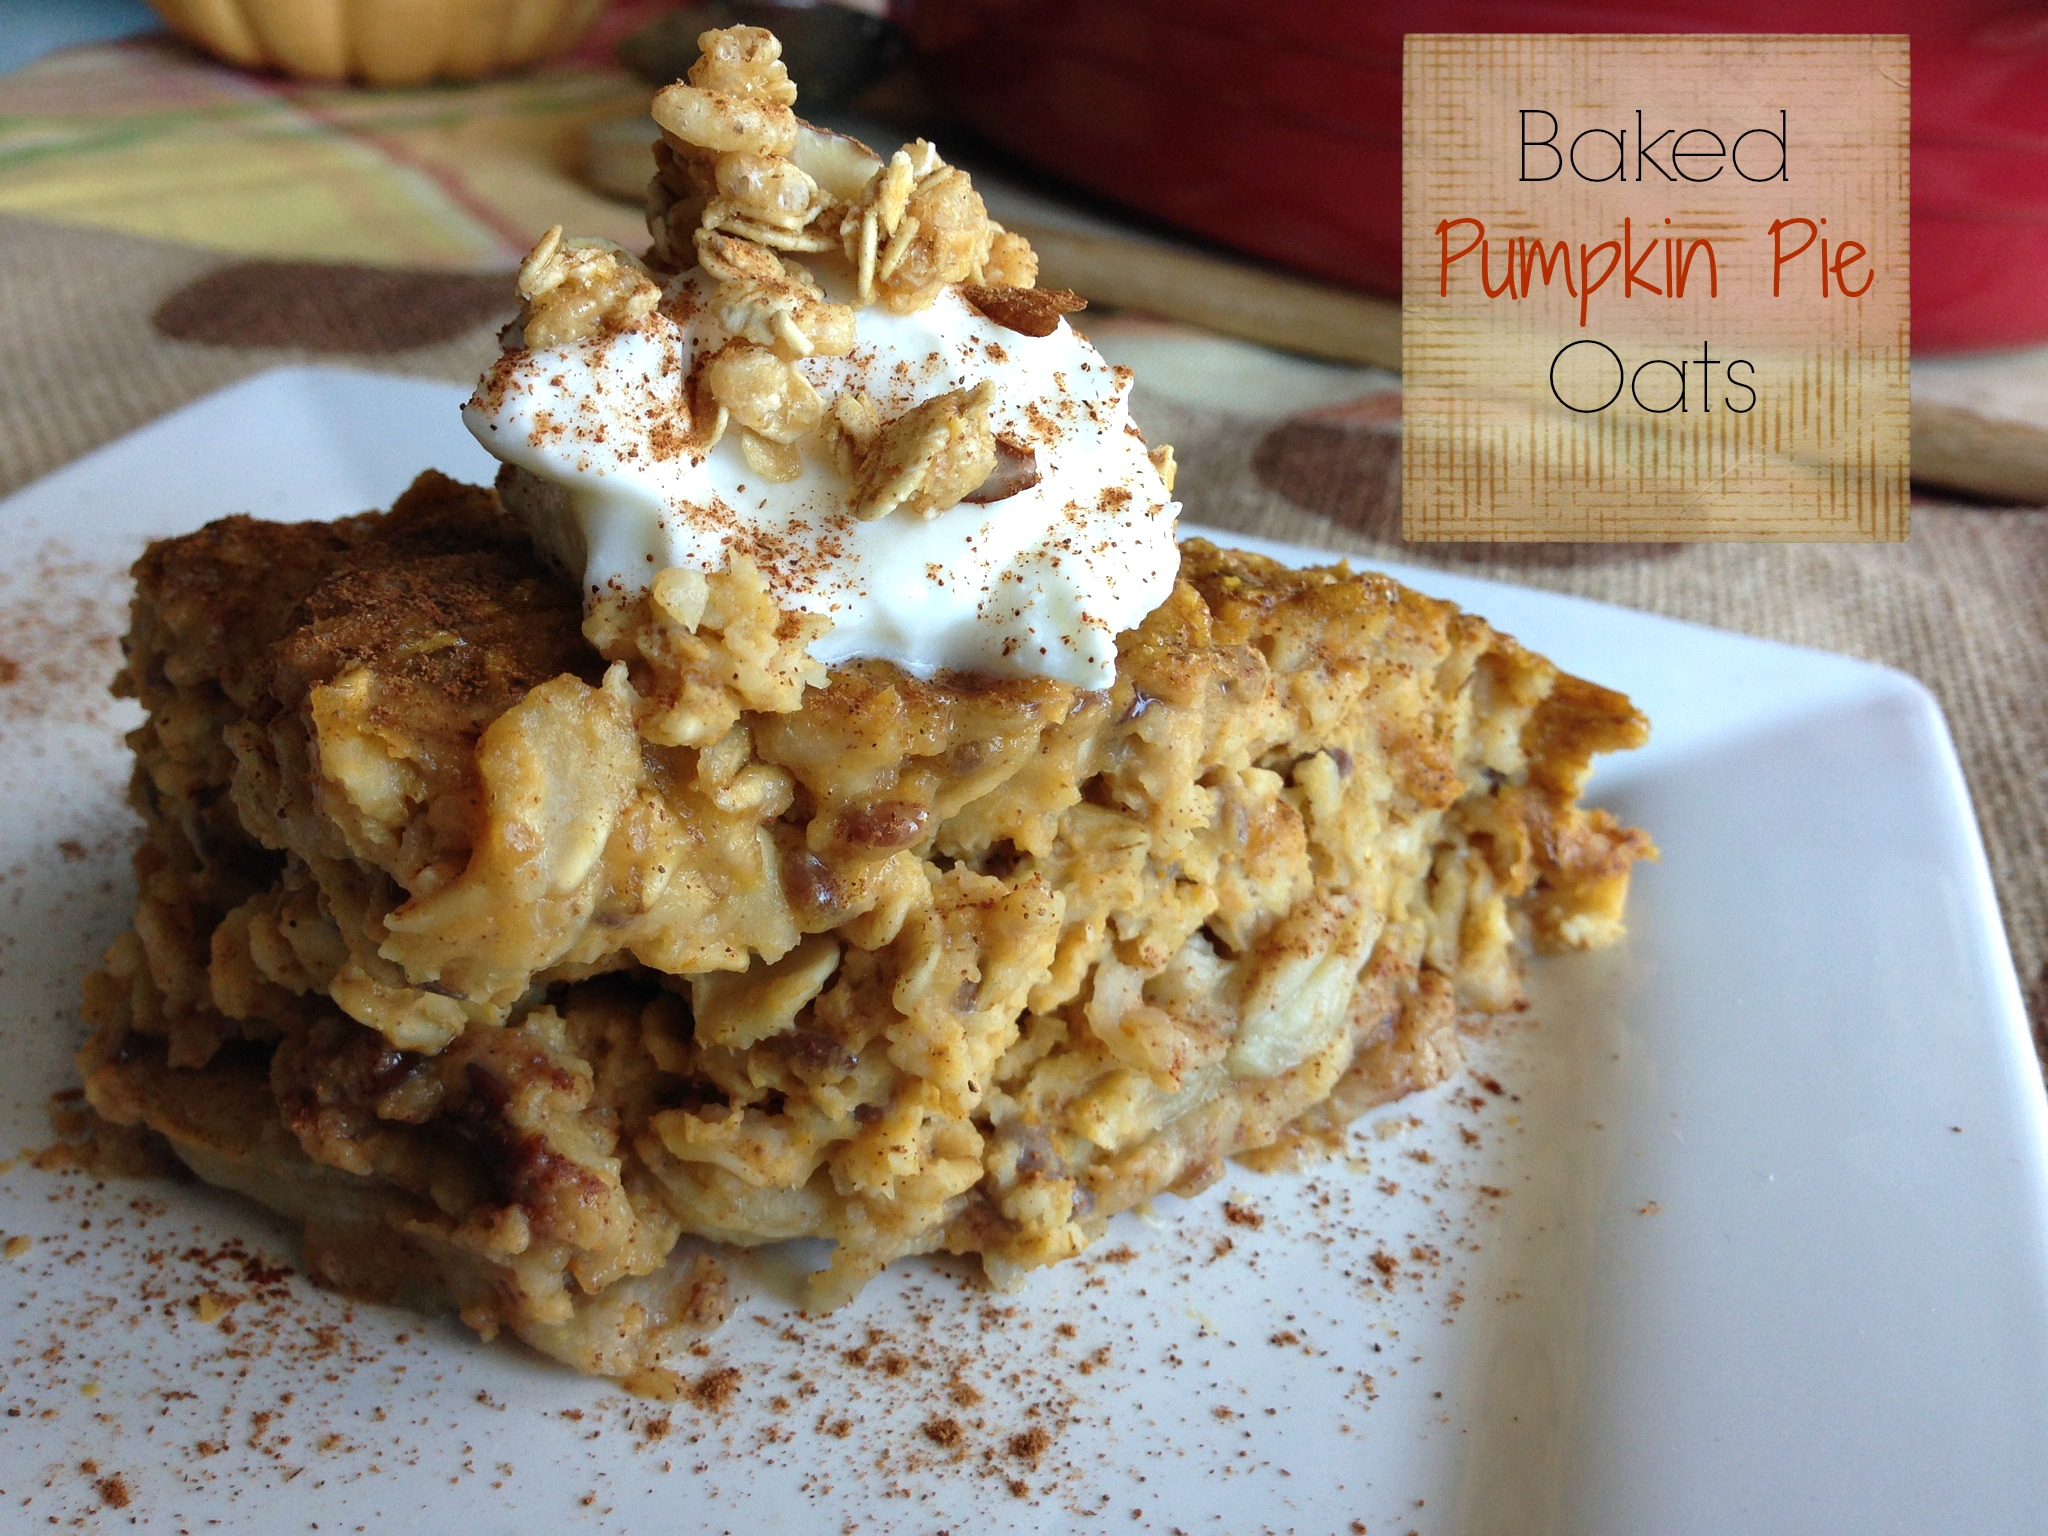 Baked Pumpkin Pie Oats